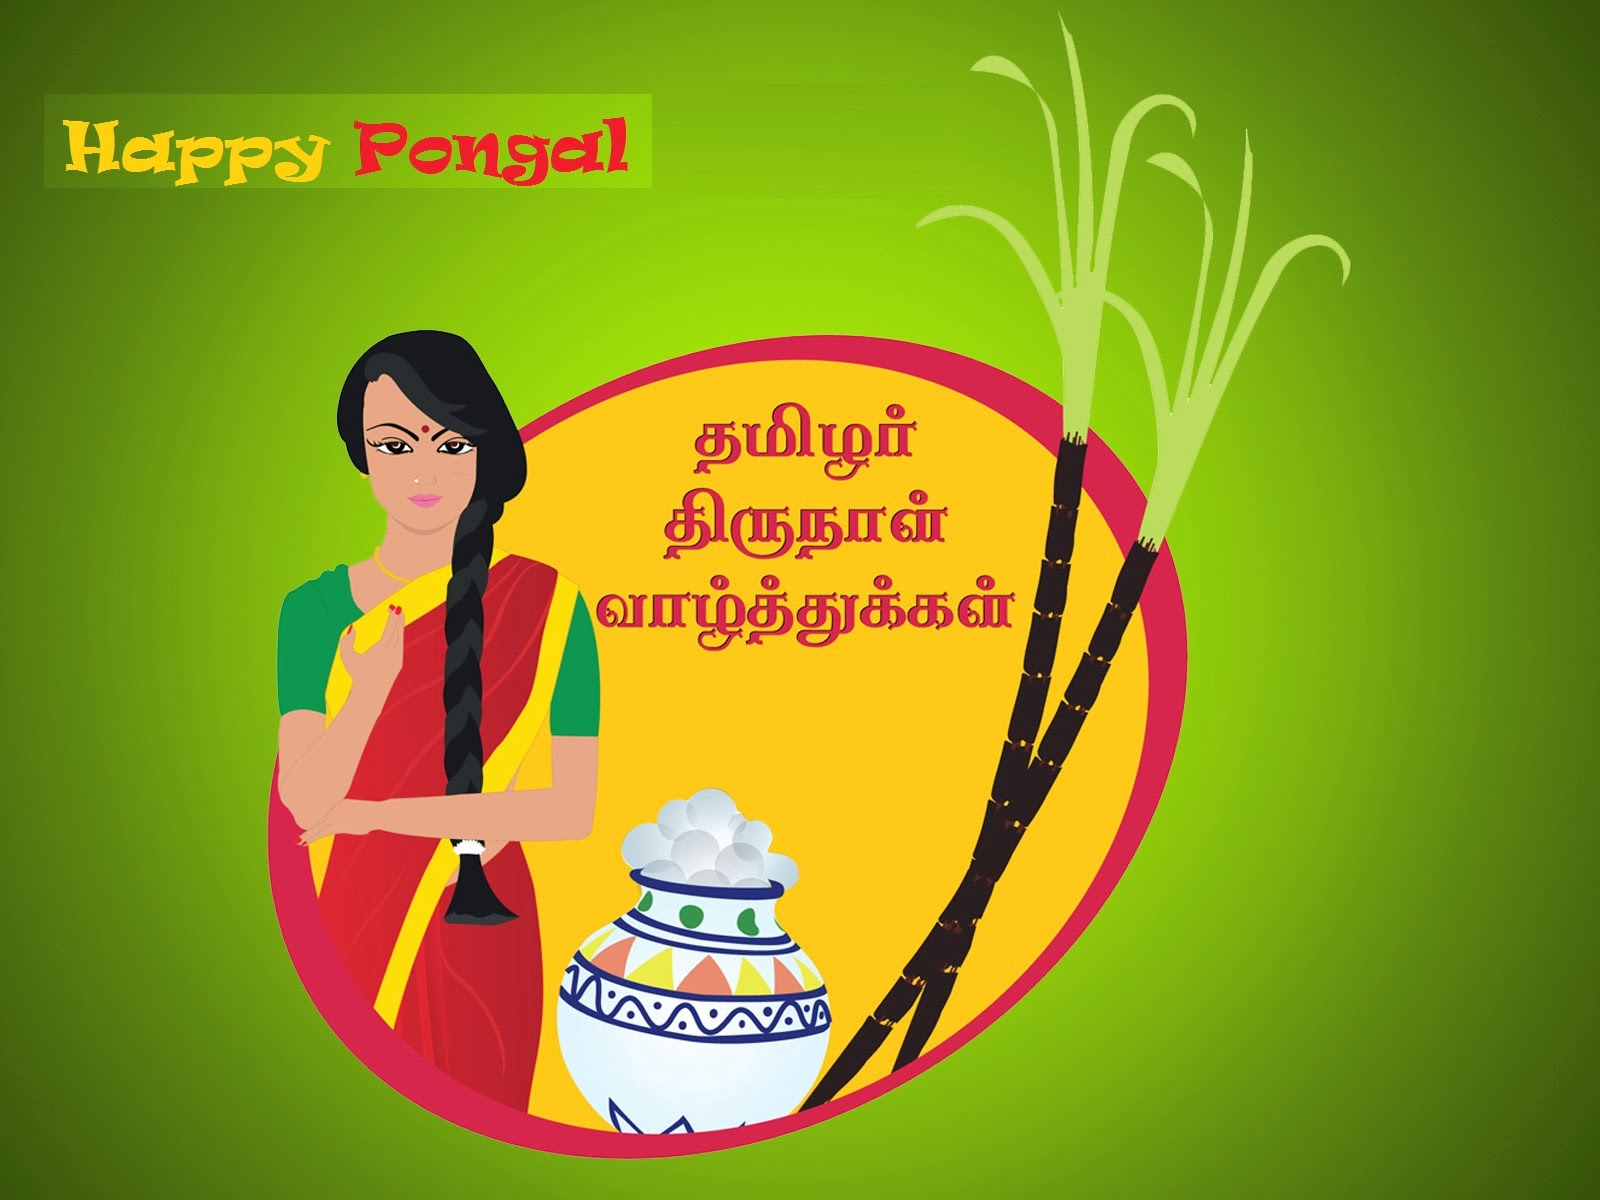 Happy Pongal 2014 Sms Text Message Wishes Quotes in English Tamil Festival thai mattu pongal 2014 gif animated Images HD wallpapers pictures and Greetings.